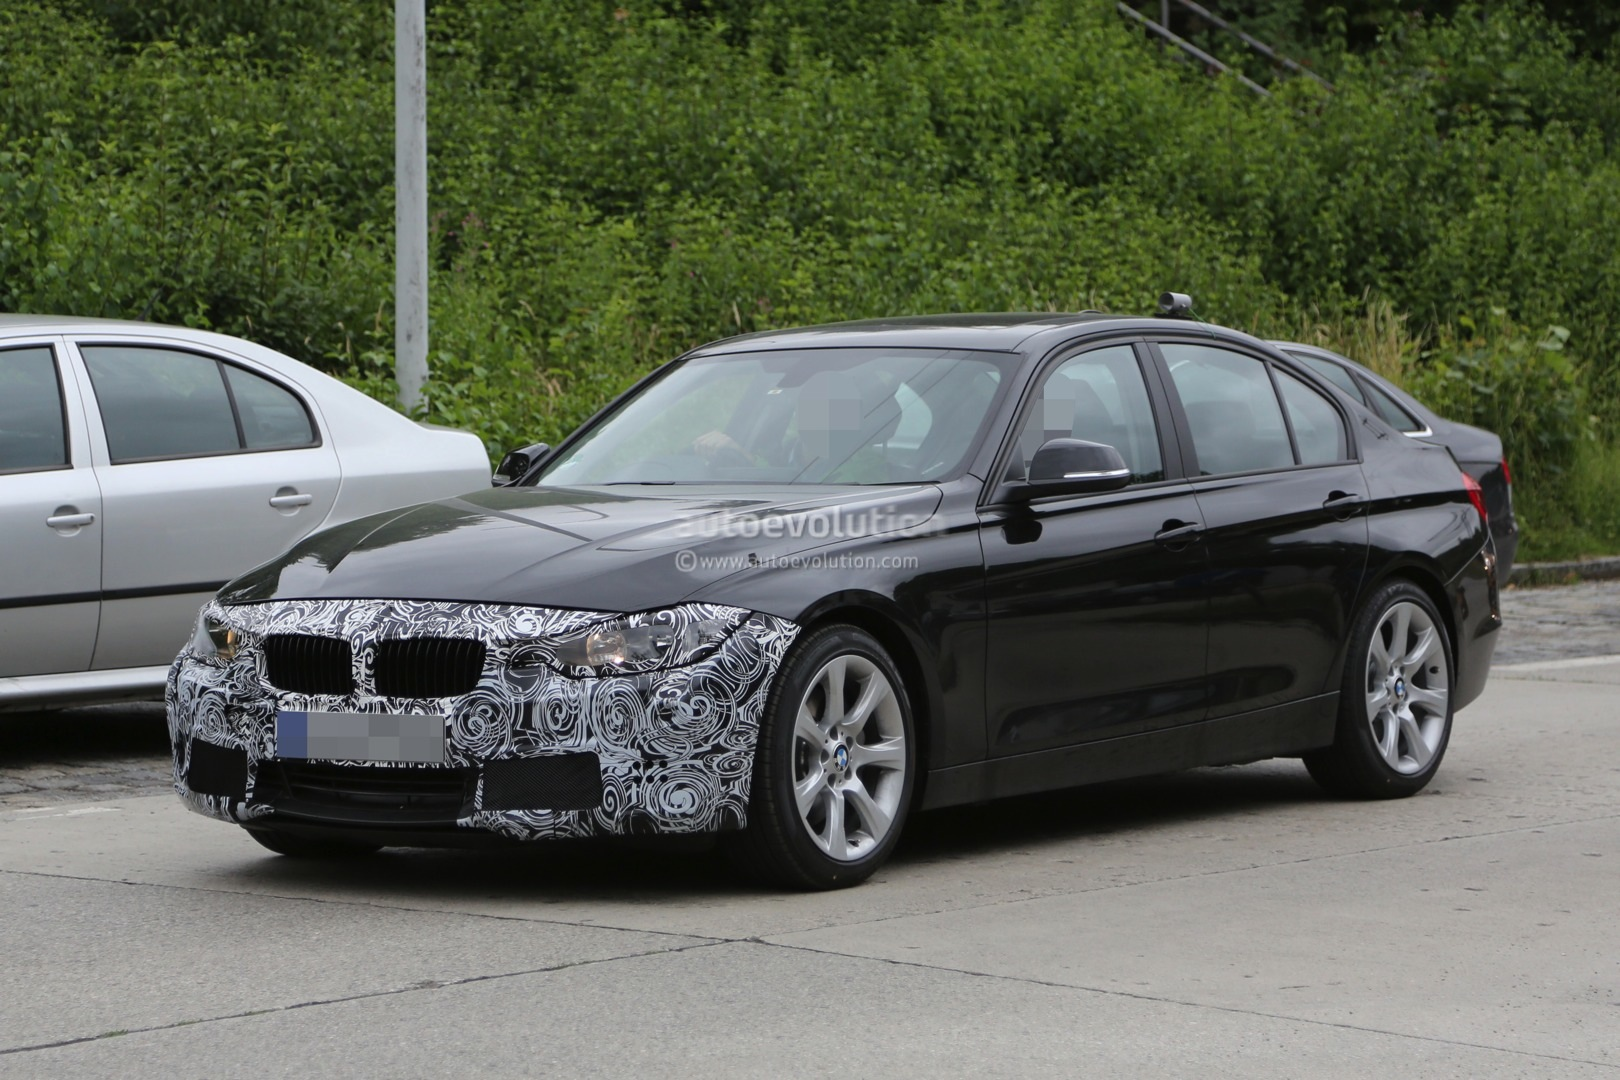 Bmw 3 Series 2015 Facelift 2015 Facelift BMW 3 Se...